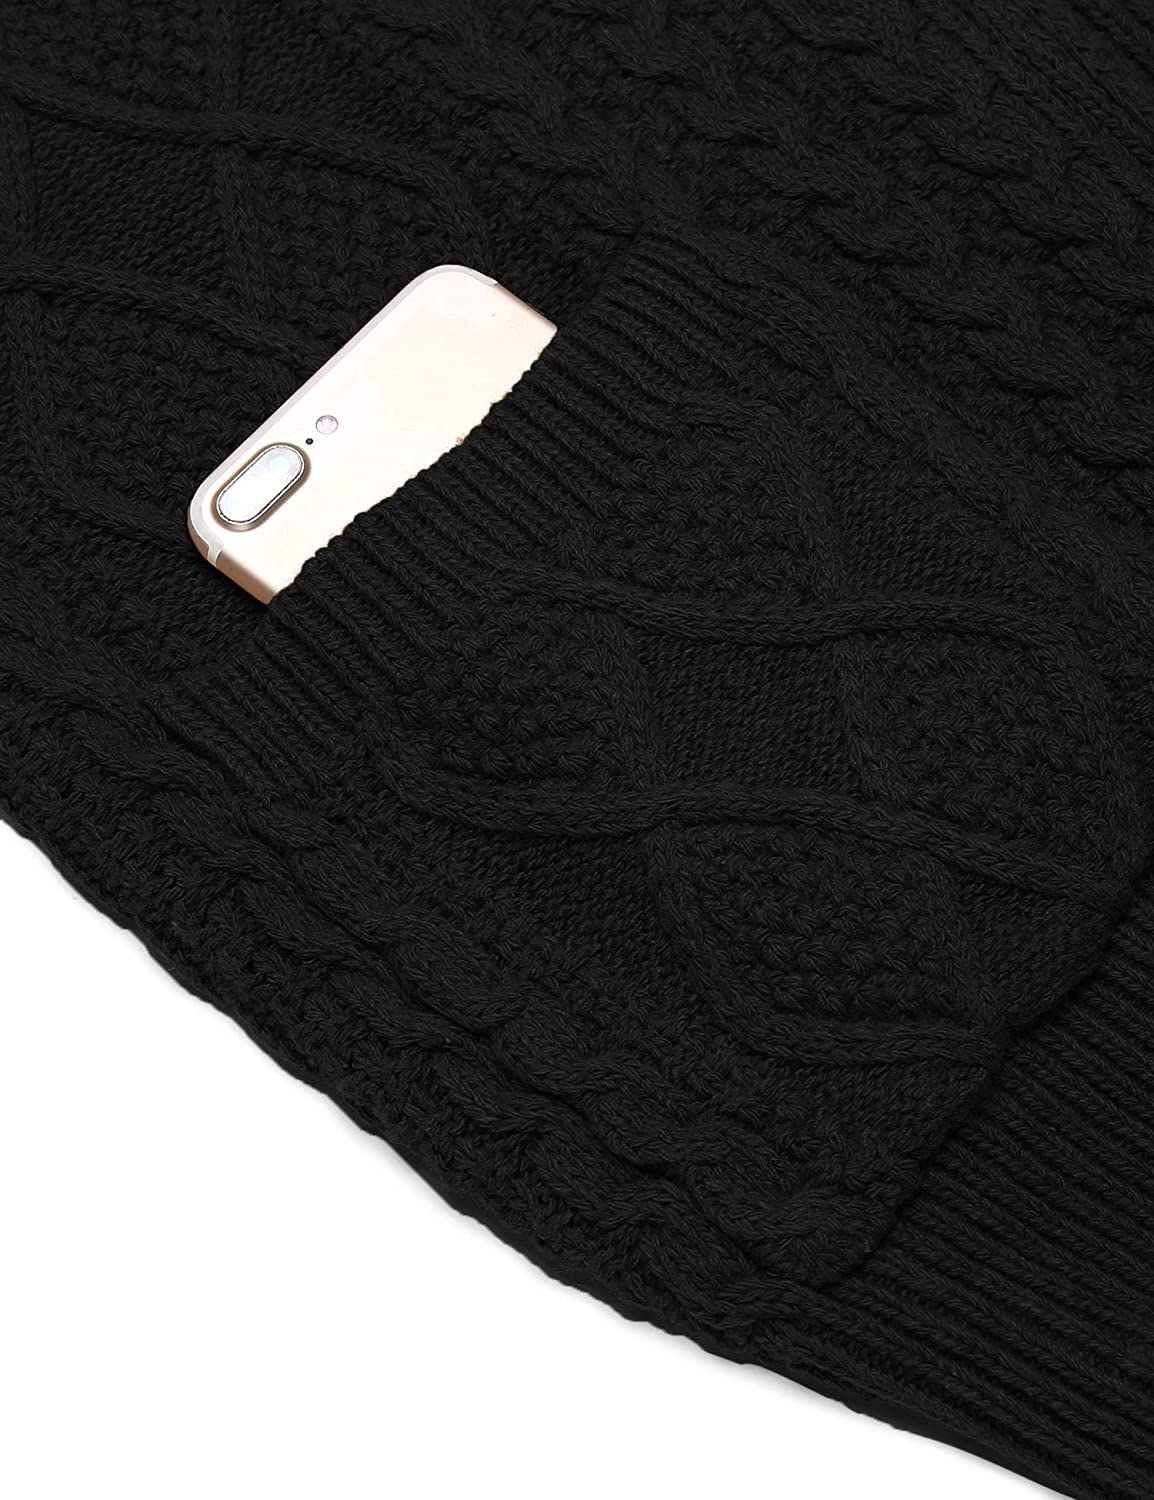 COOFANDY Mens Full Zip Cardigan Sweater Slim Fit Stand Collar Cotton Cable Knitted Sweater Jacket with Pockets